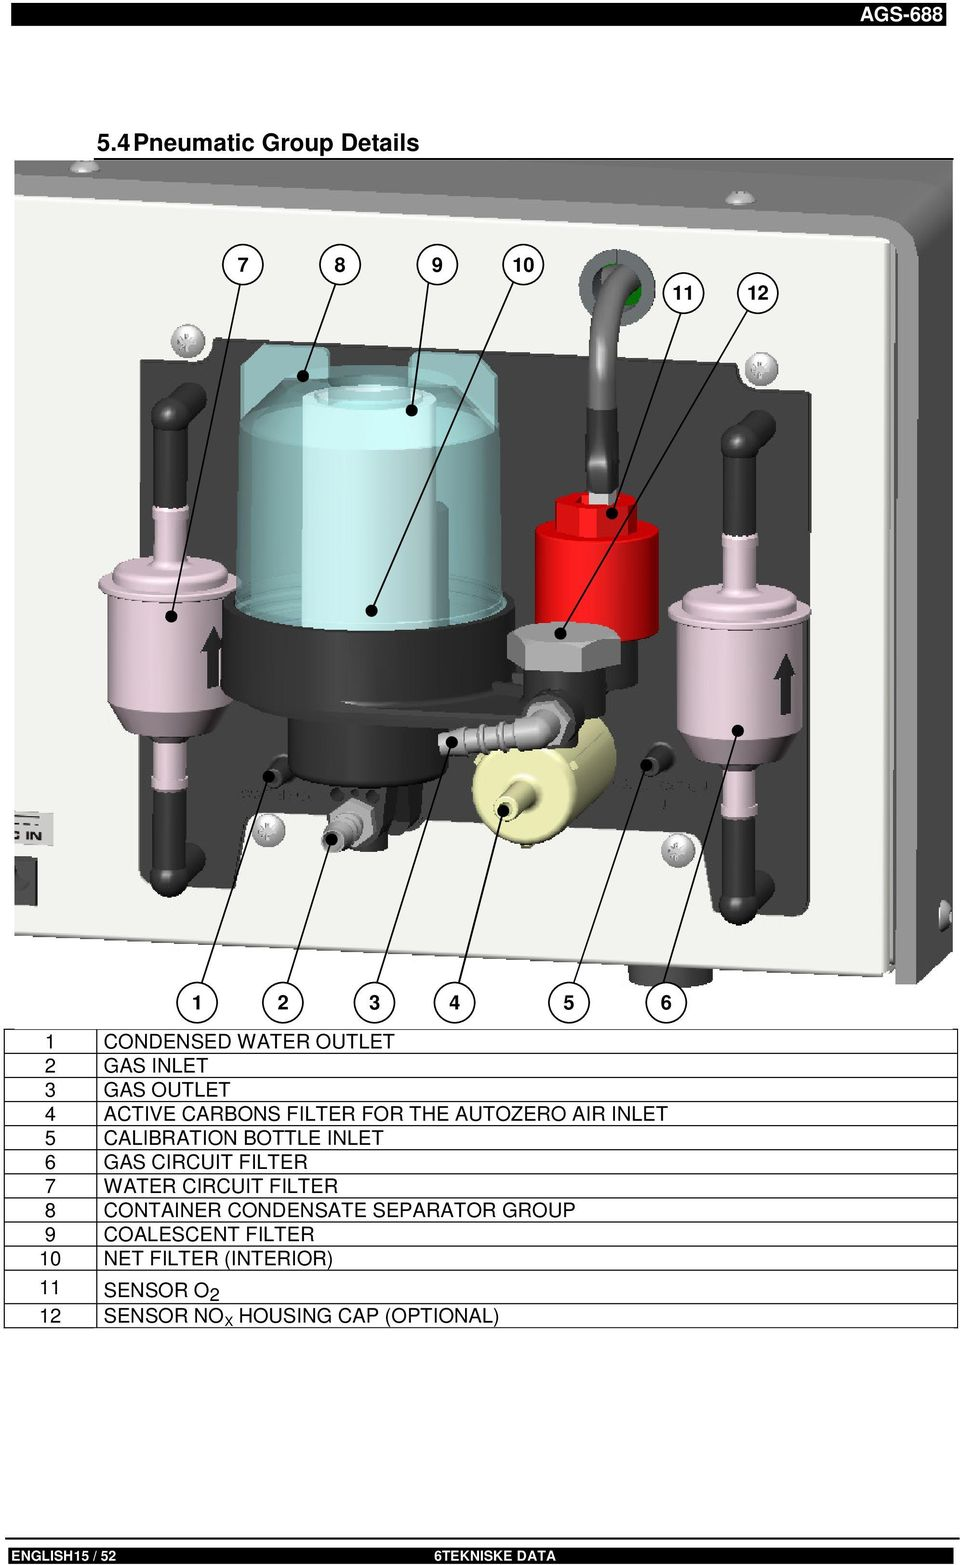 CIRCUIT FILTER 7 WATER CIRCUIT FILTER 8 CONTAINER CONDENSATE SEPARATOR GROUP 9 COALESCENT FILTER